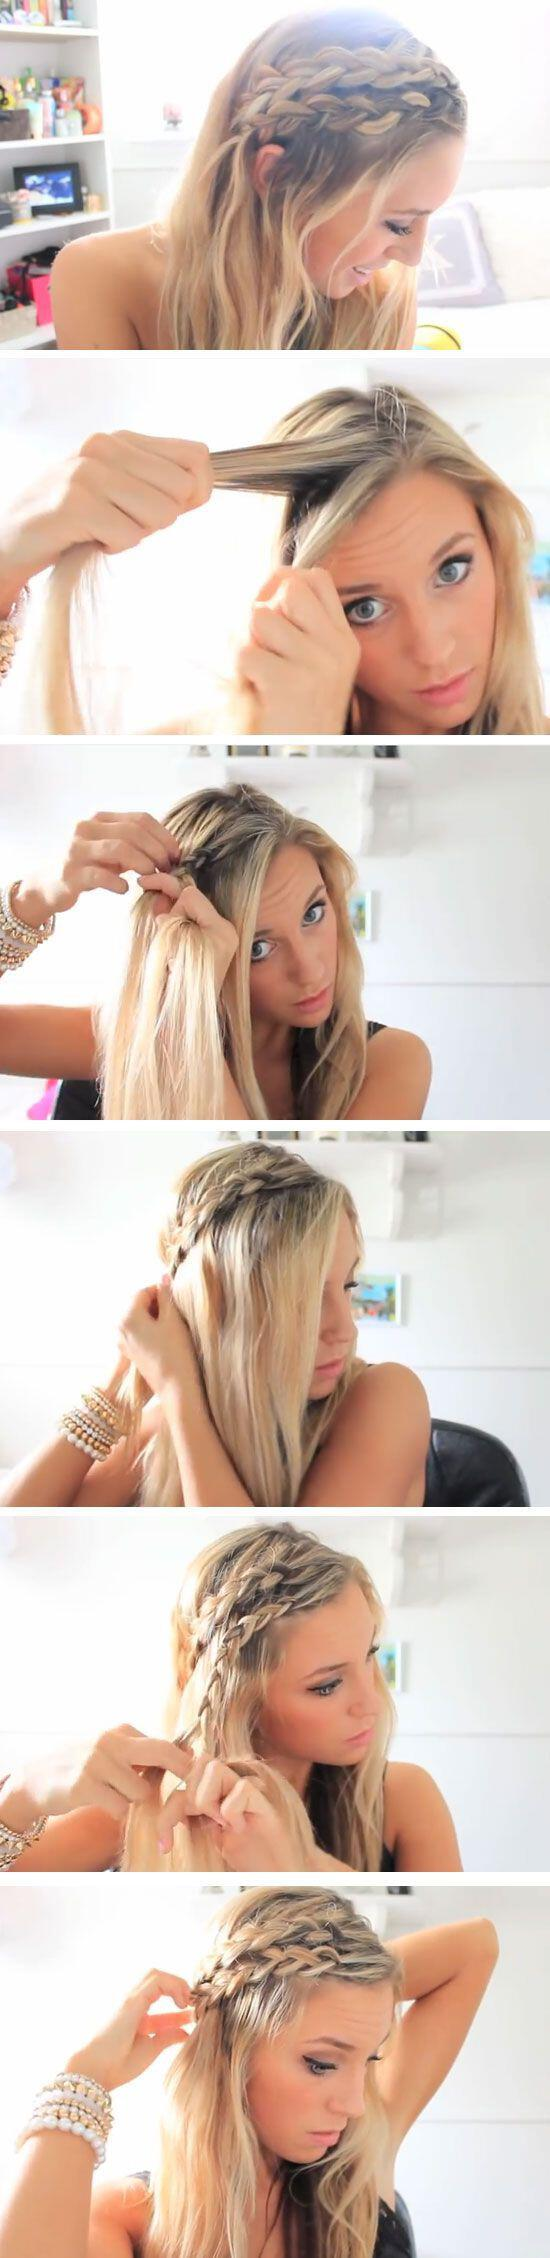 15 gorgeous and easy beach hairstyles to rock this summer 13 - 15 Gorgeous and Easy Beach Hairstyles to rock this summer